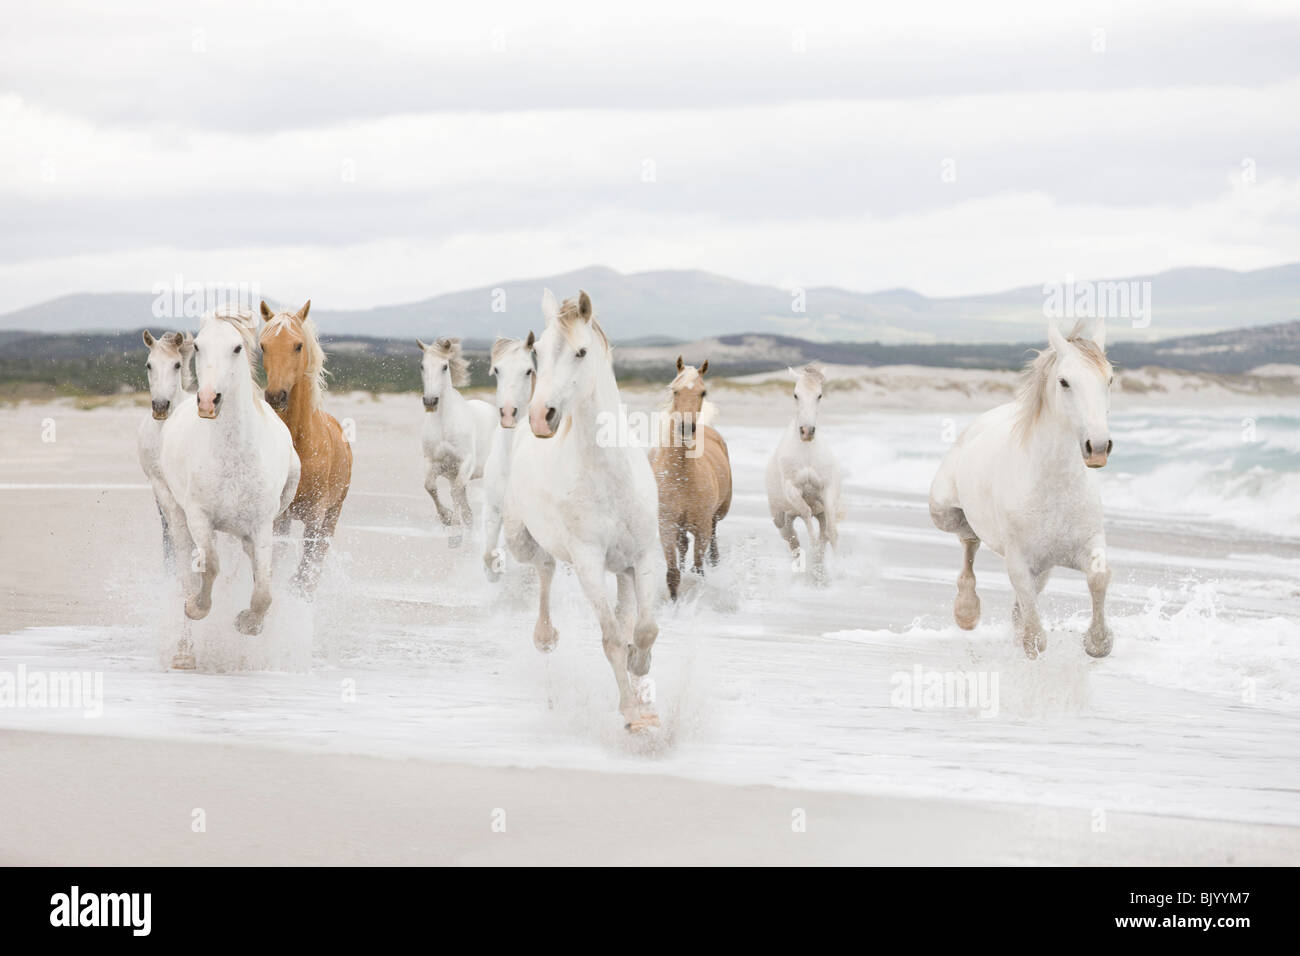 Chevaux sur la plage Photo Stock